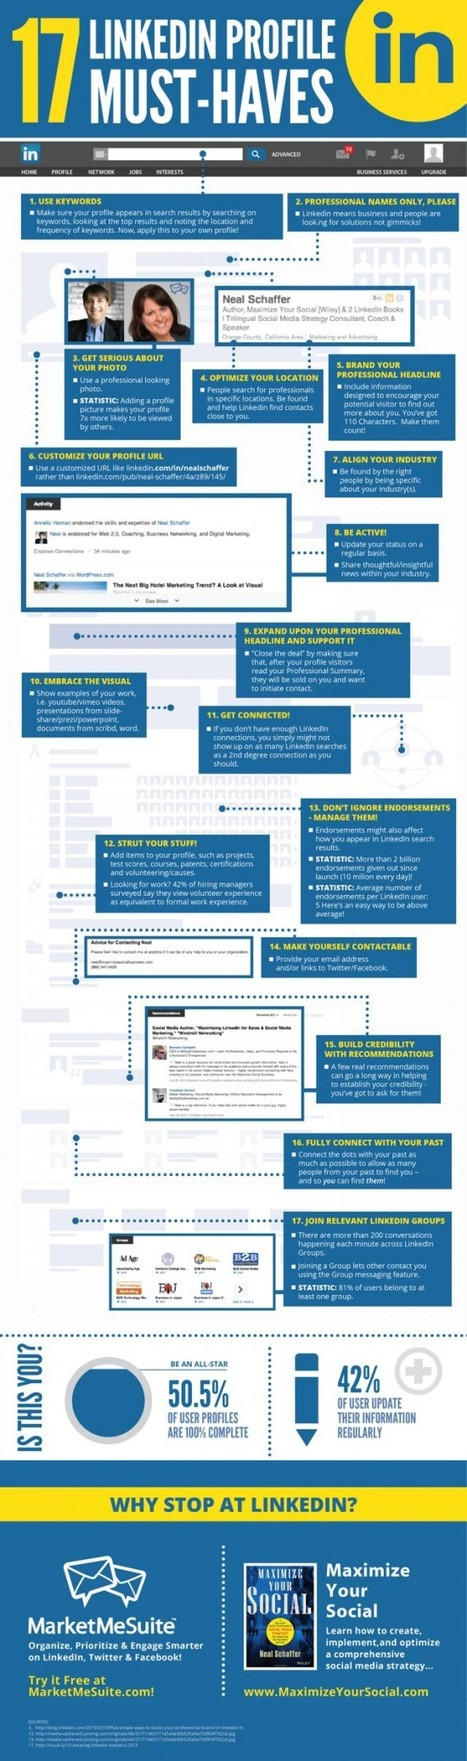 17 LinkedIn Profile Tips [Infographic] - Smart Insights Digital Marketing Advice | Cuppa | Scoop.it